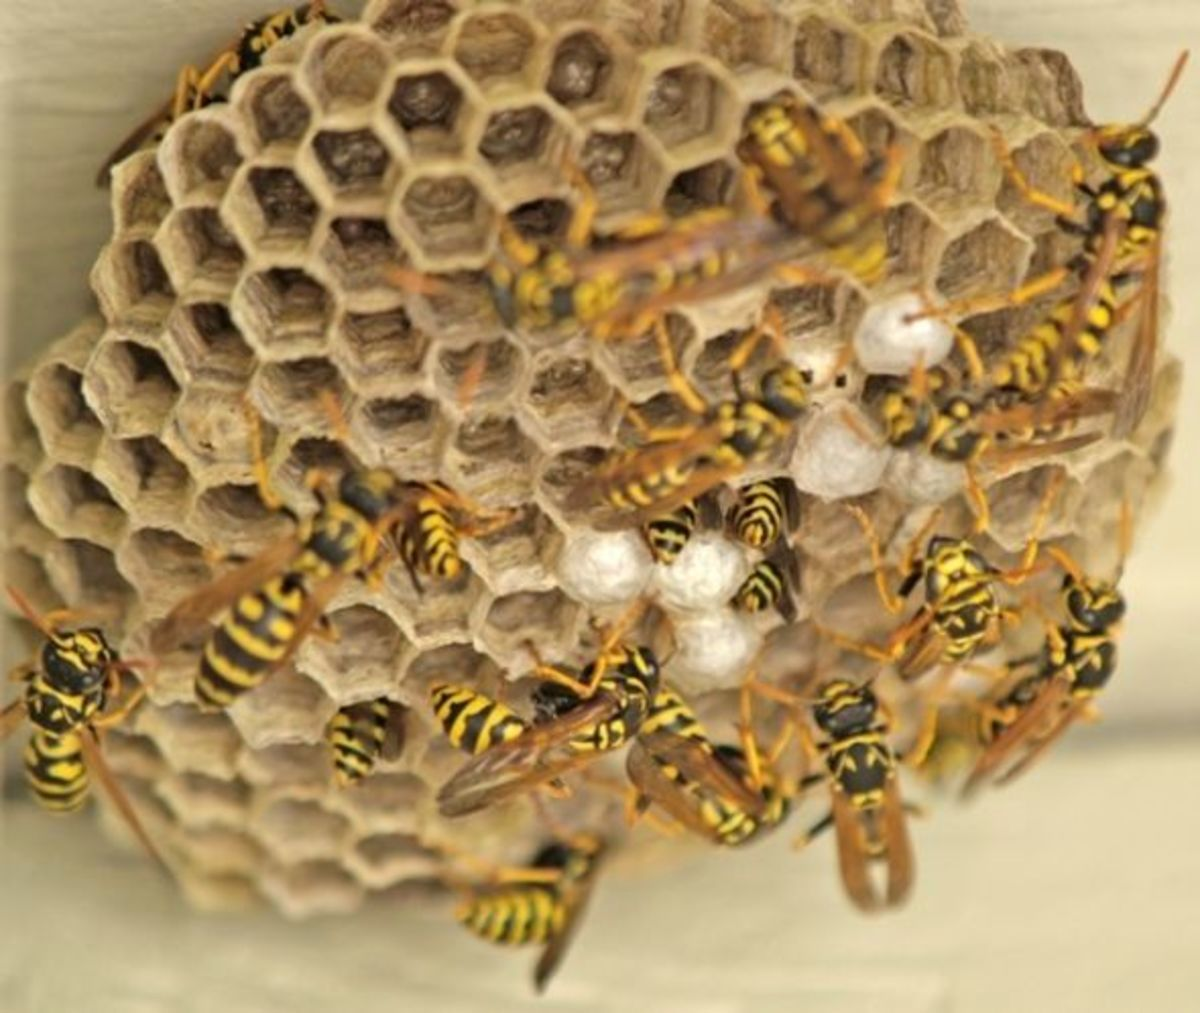 How to Kill Wasps--Safely | HubPages